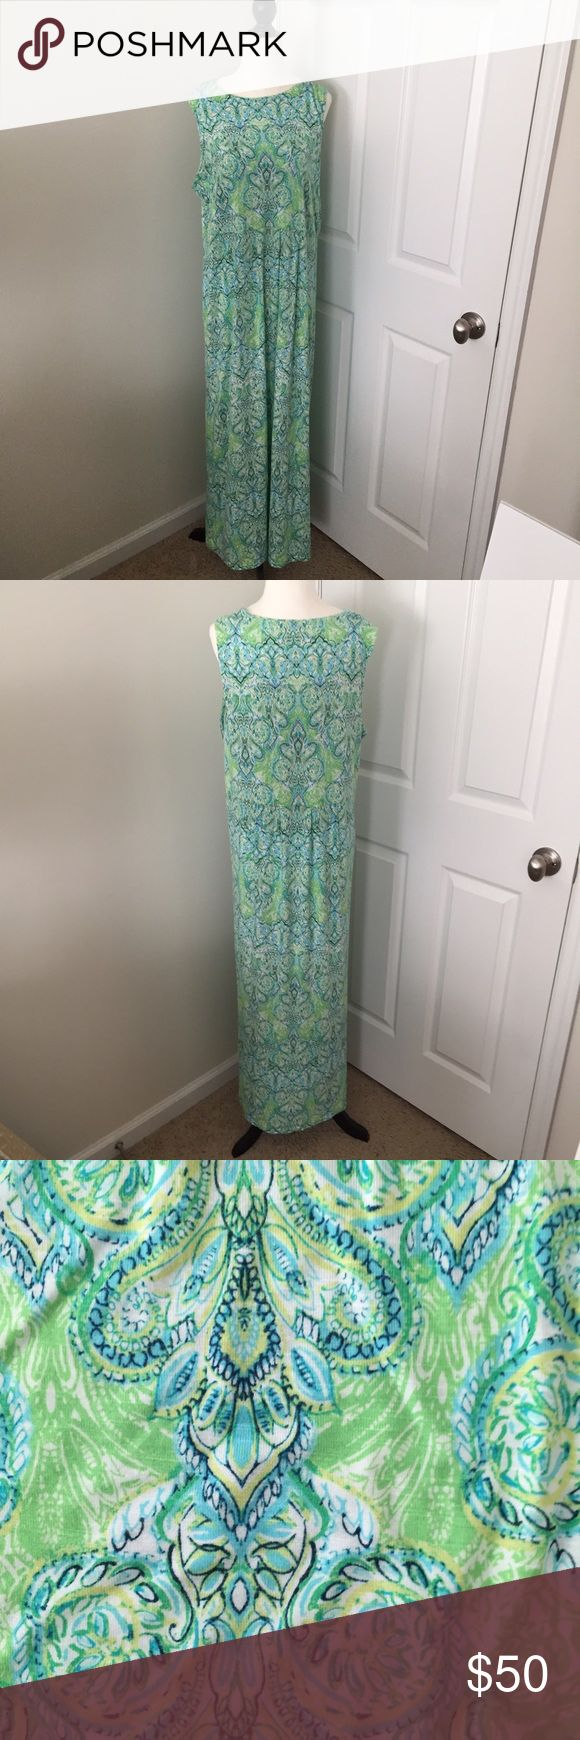 """Lovely J. Jill Turquoise Maxi - Large J. Jill Paisley Maxi Dress - Large Tall  White, black, turquoise and lime paisley   95% rayon/5% spandex knit  Size Large Tall  Measurements (inches) Shoulder: 13"""" Bust:  20"""" laying flat  Length:  51"""" J. Jill Dresses Maxi"""